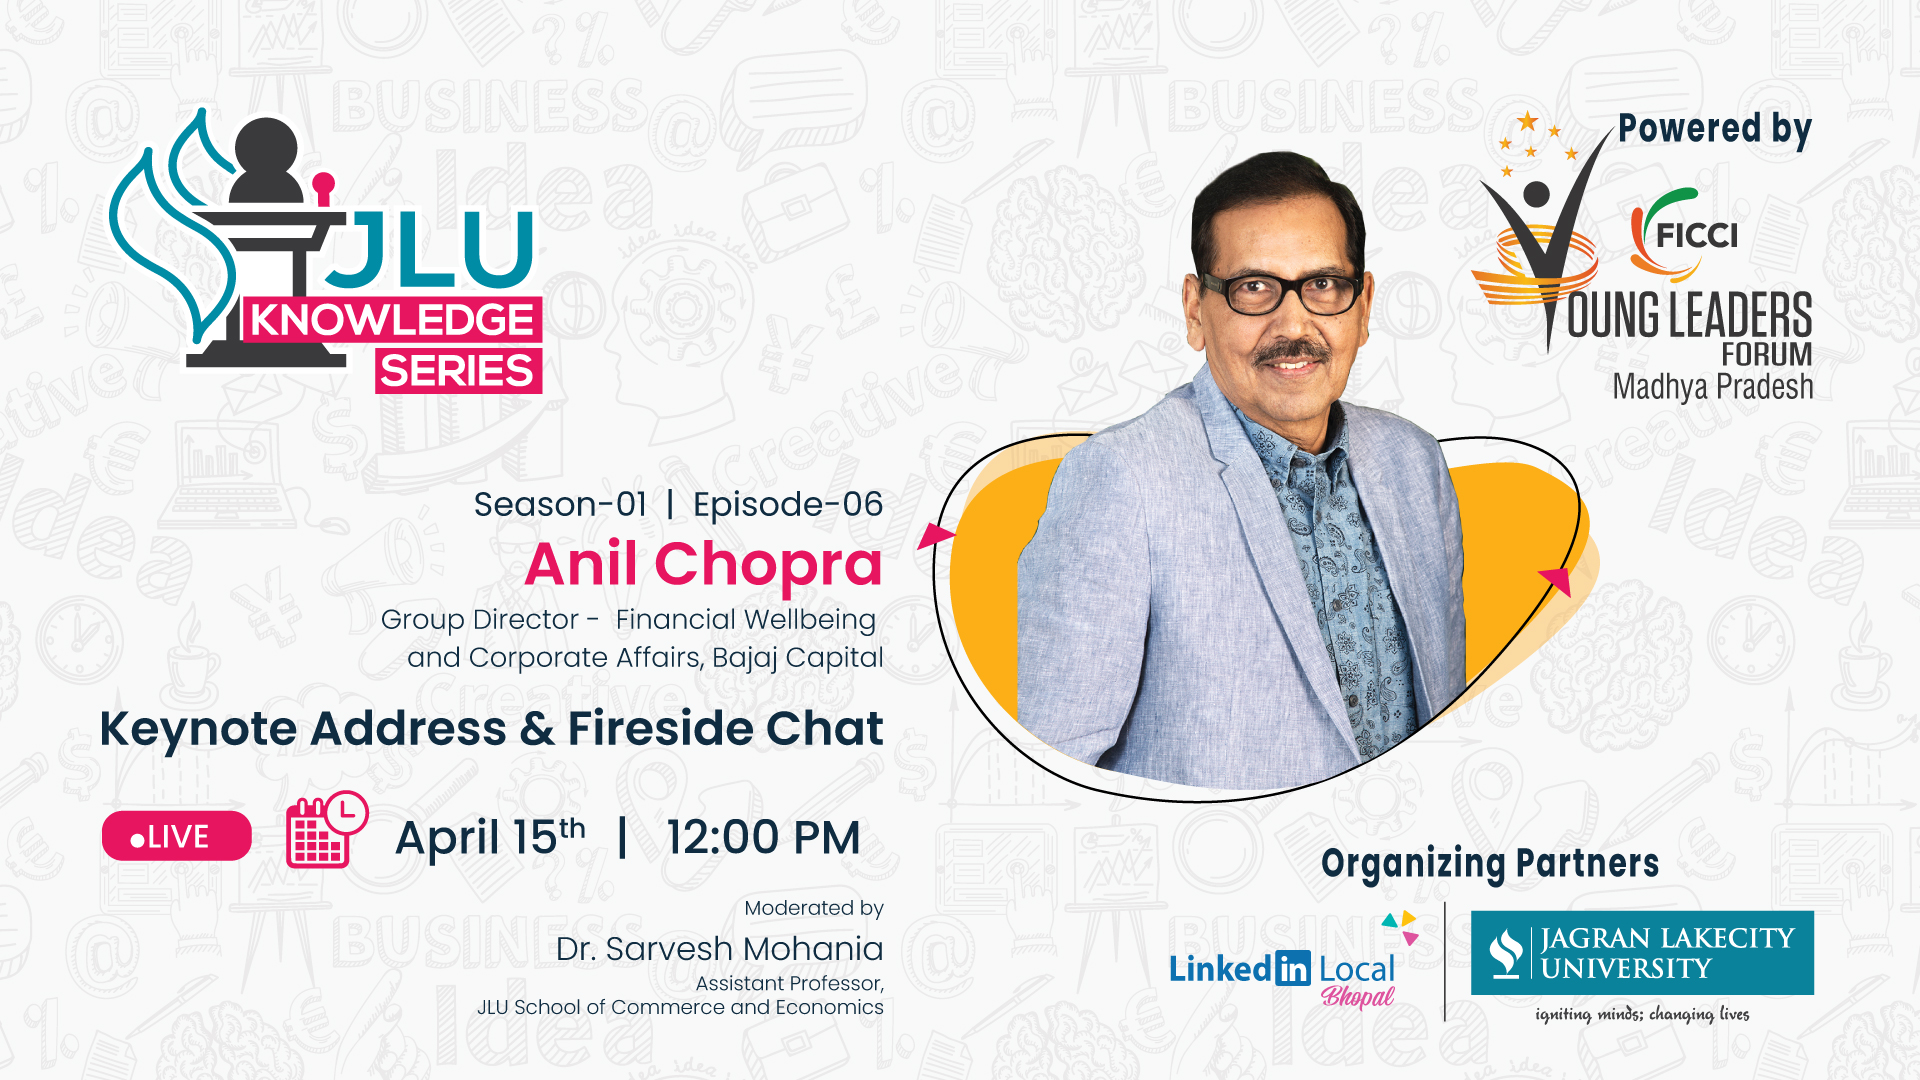 JLU Conducted Knowledge Series Ep-6, with Mr. Anil Chopra, Group Director – Finance Wellbeing and Corporate Affairs, Bajaj Capital Ltd